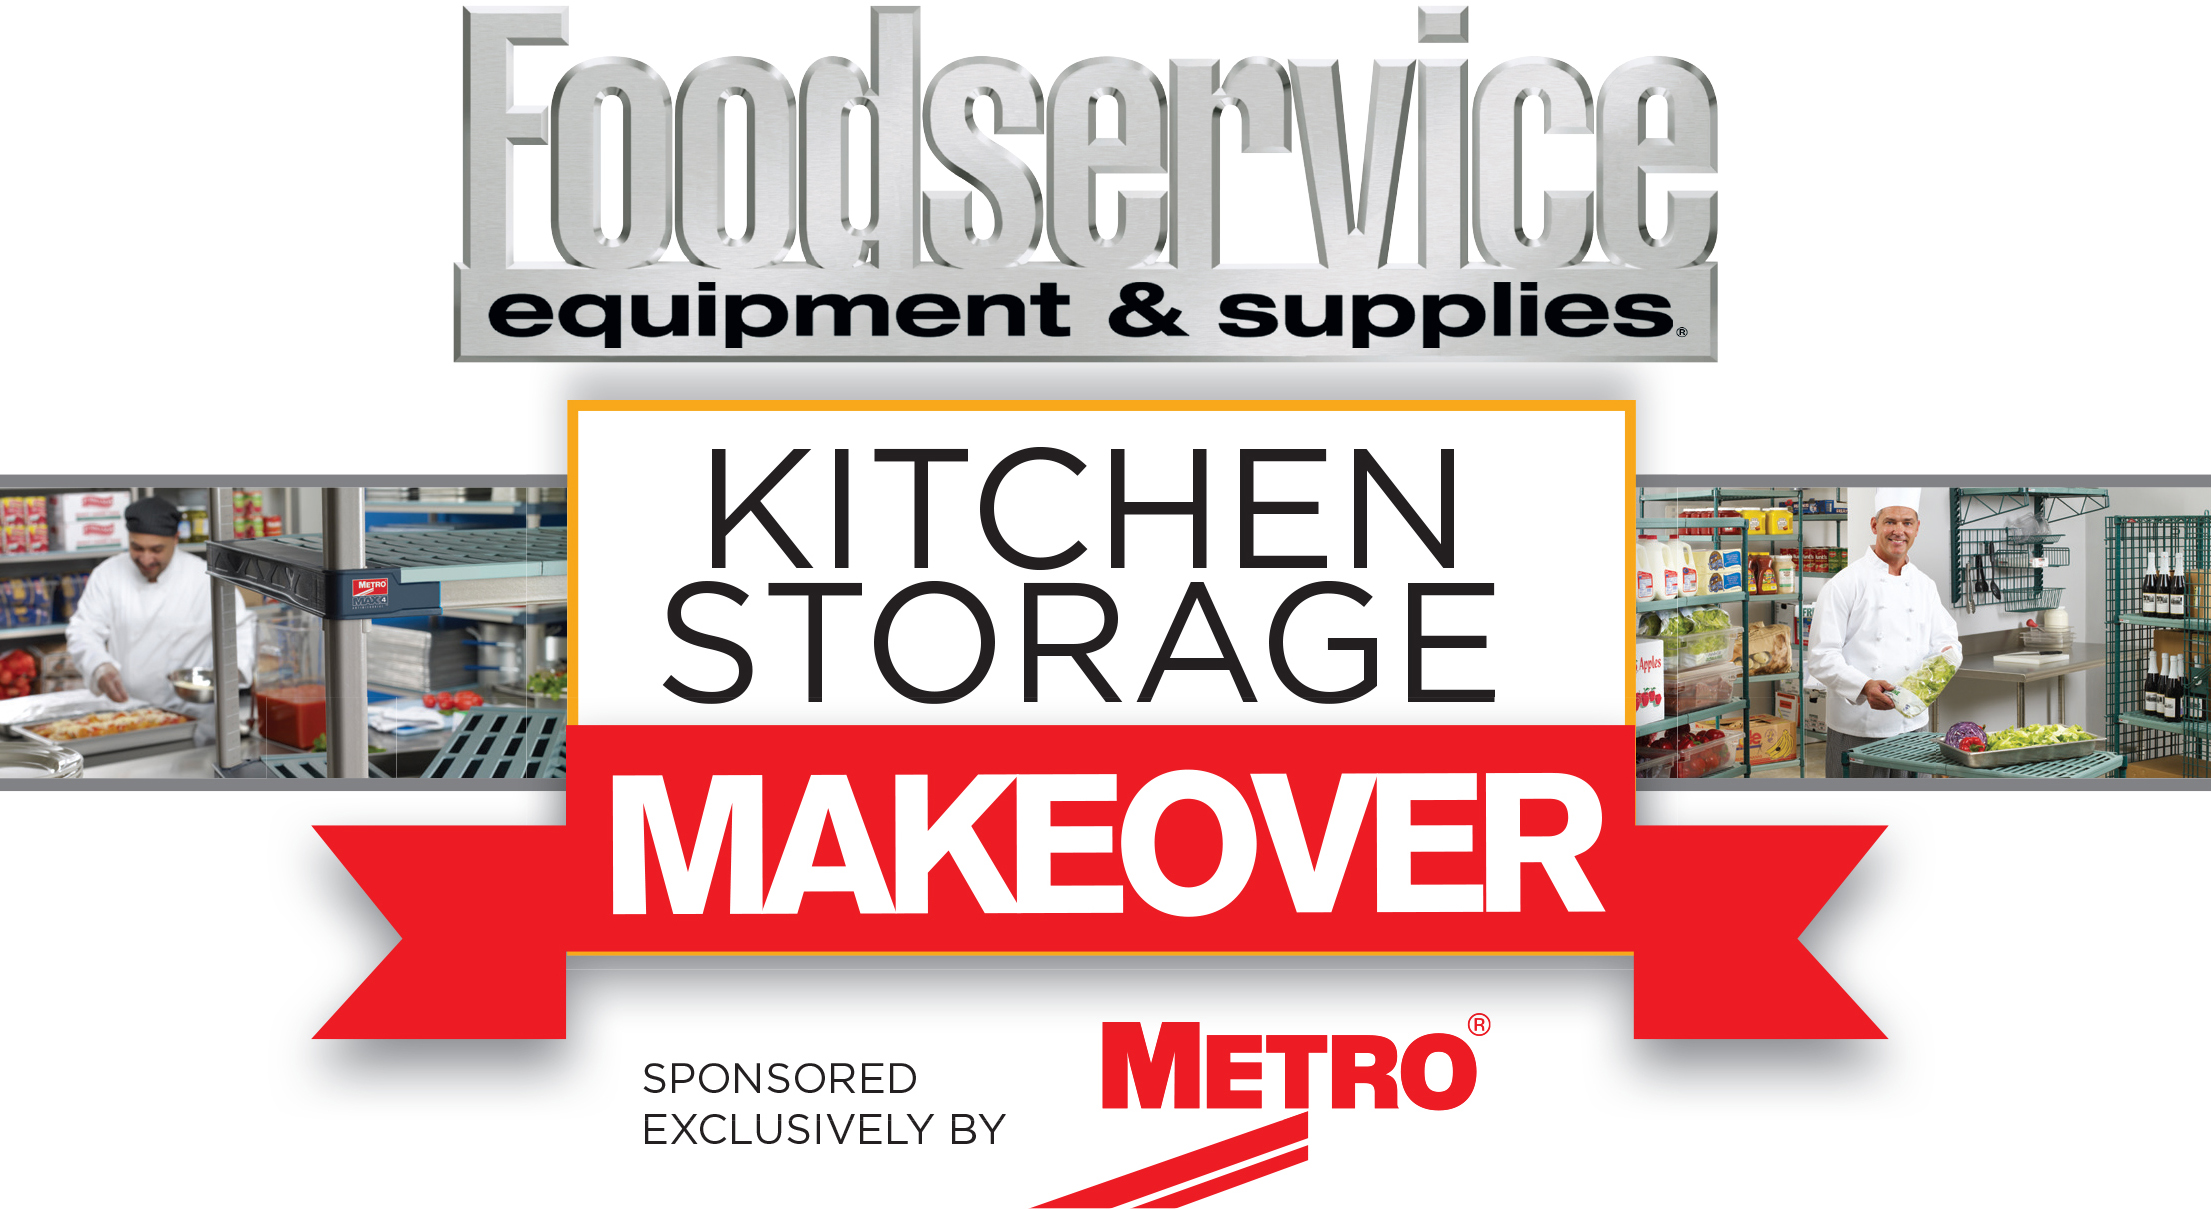 Commercial Kitchen Storage Makeover Foodservice Equipment